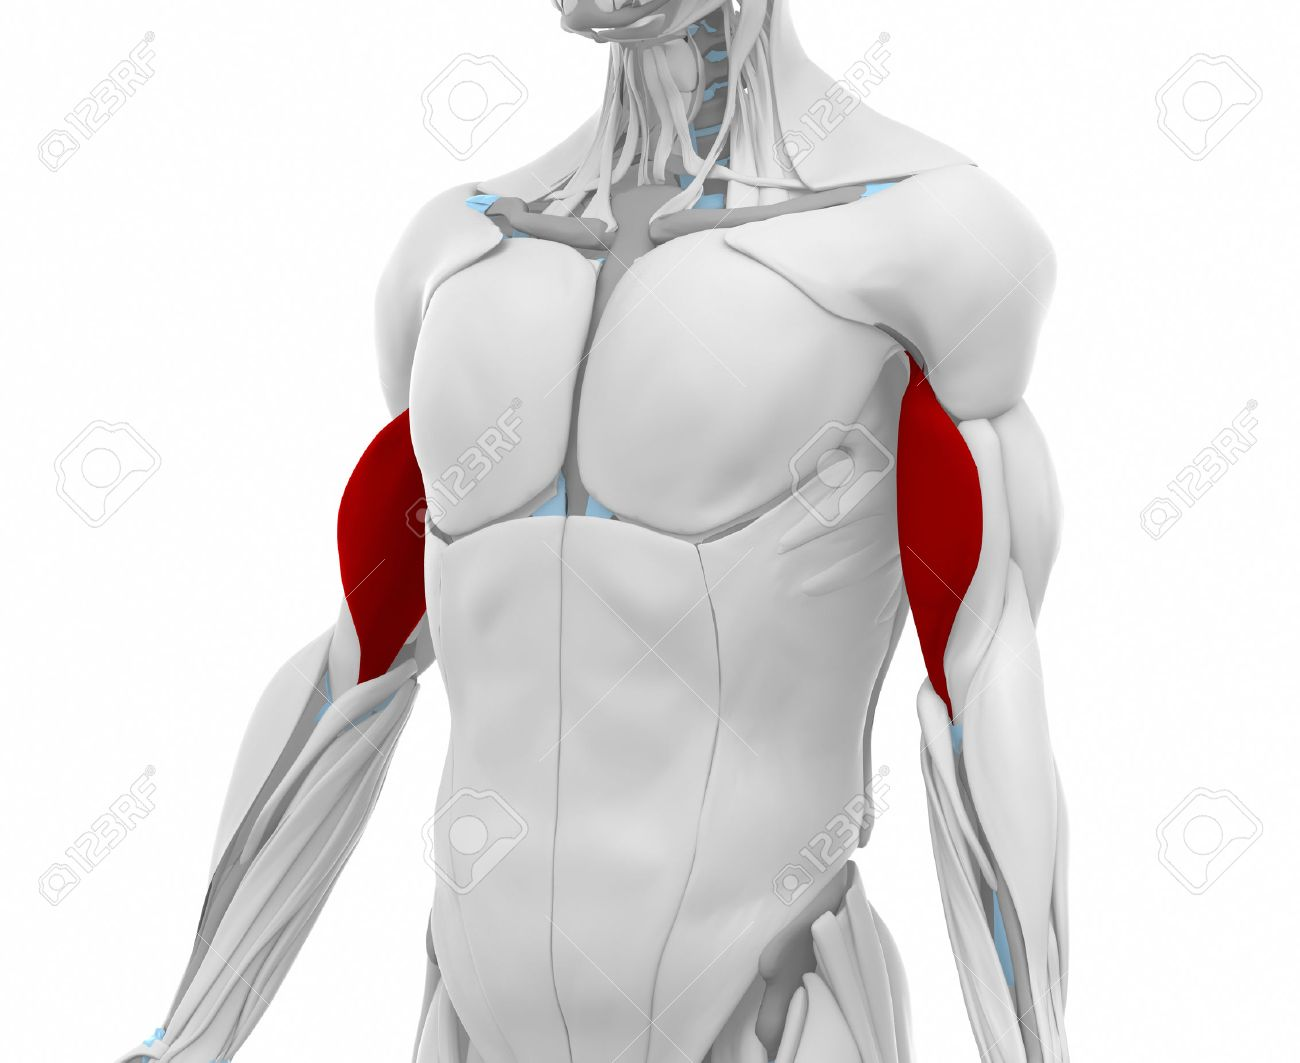 Biceps Brachii - Muscles Anatomy Map Stock Photo, Picture And ...